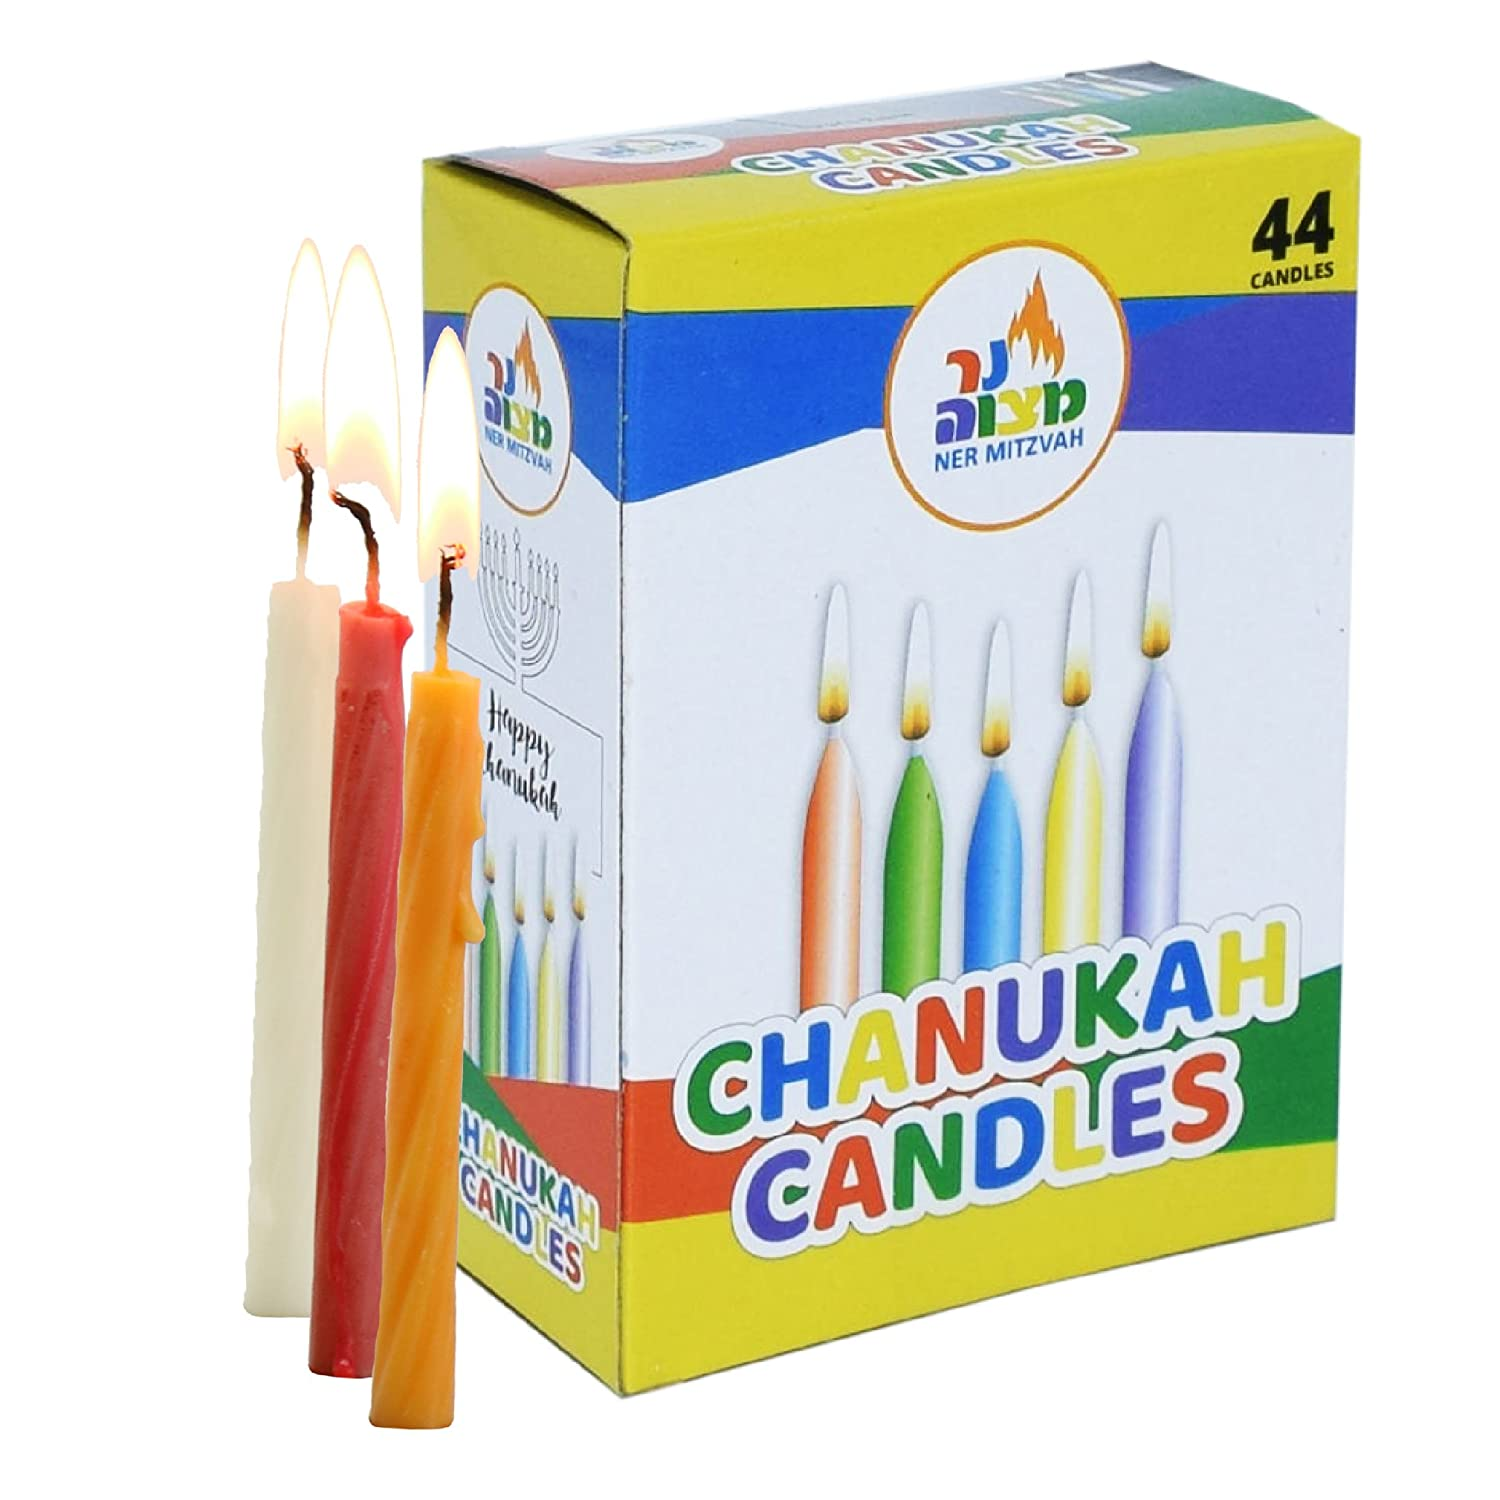 Ner Mitzvah Chanukah Candles Colorful - 44 Ct, 1 Pack 27583